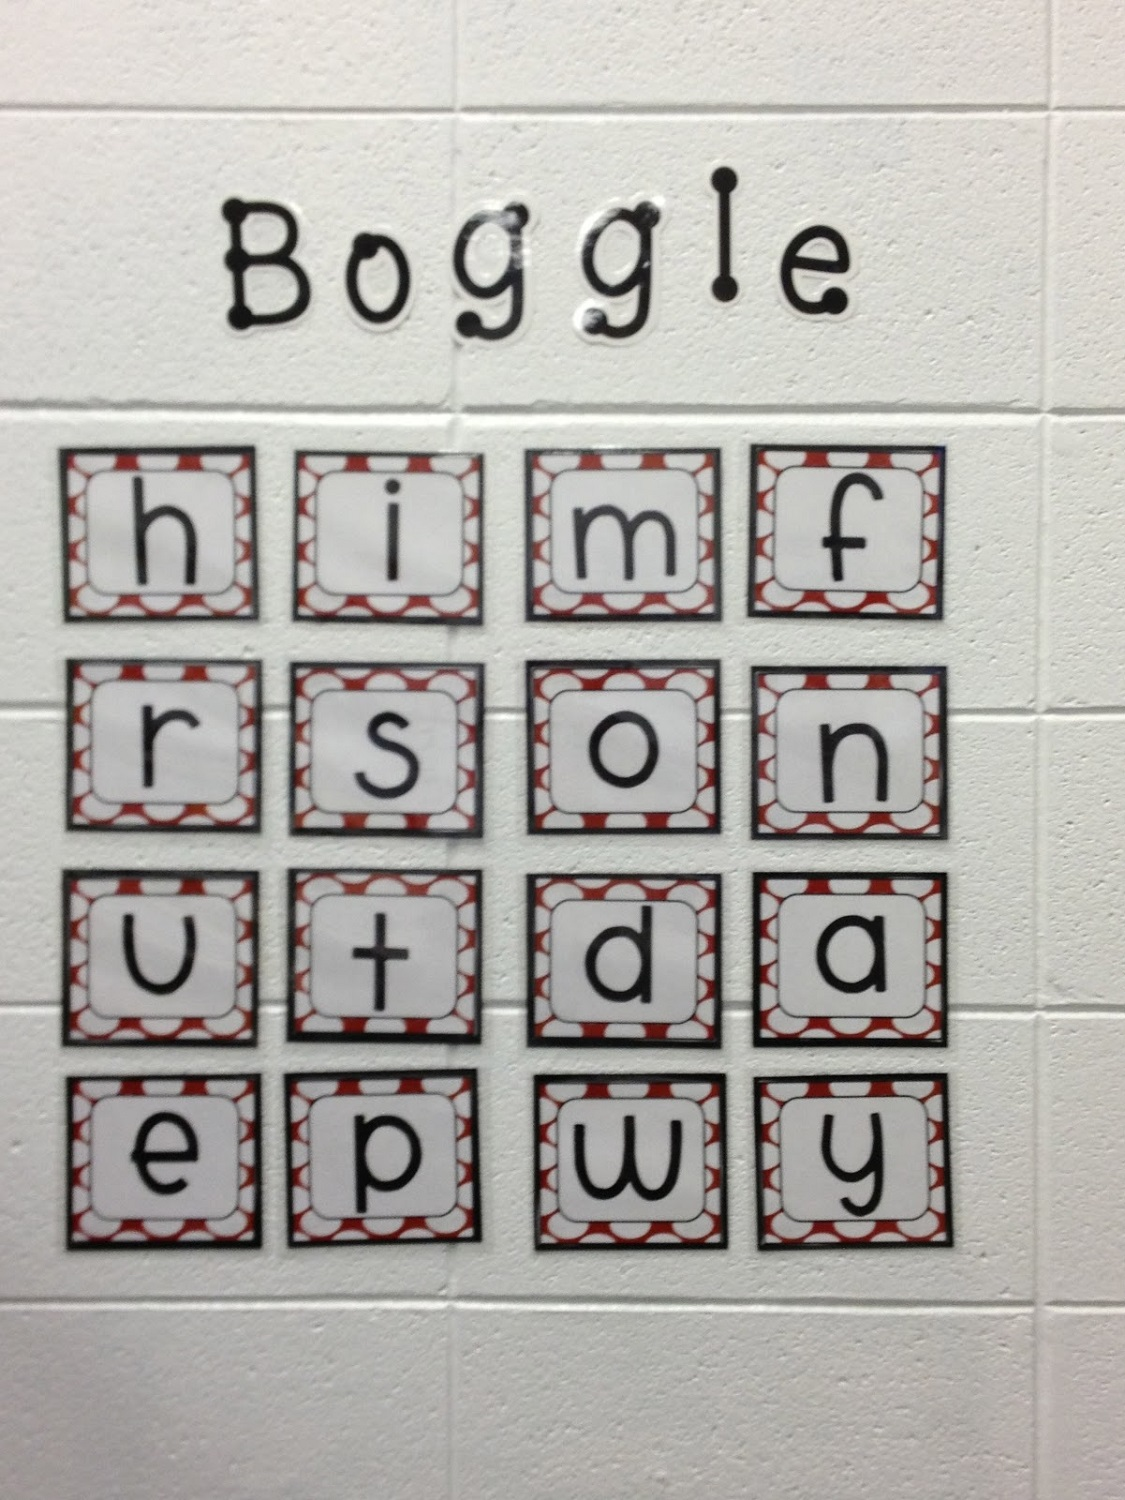 boggle word games free